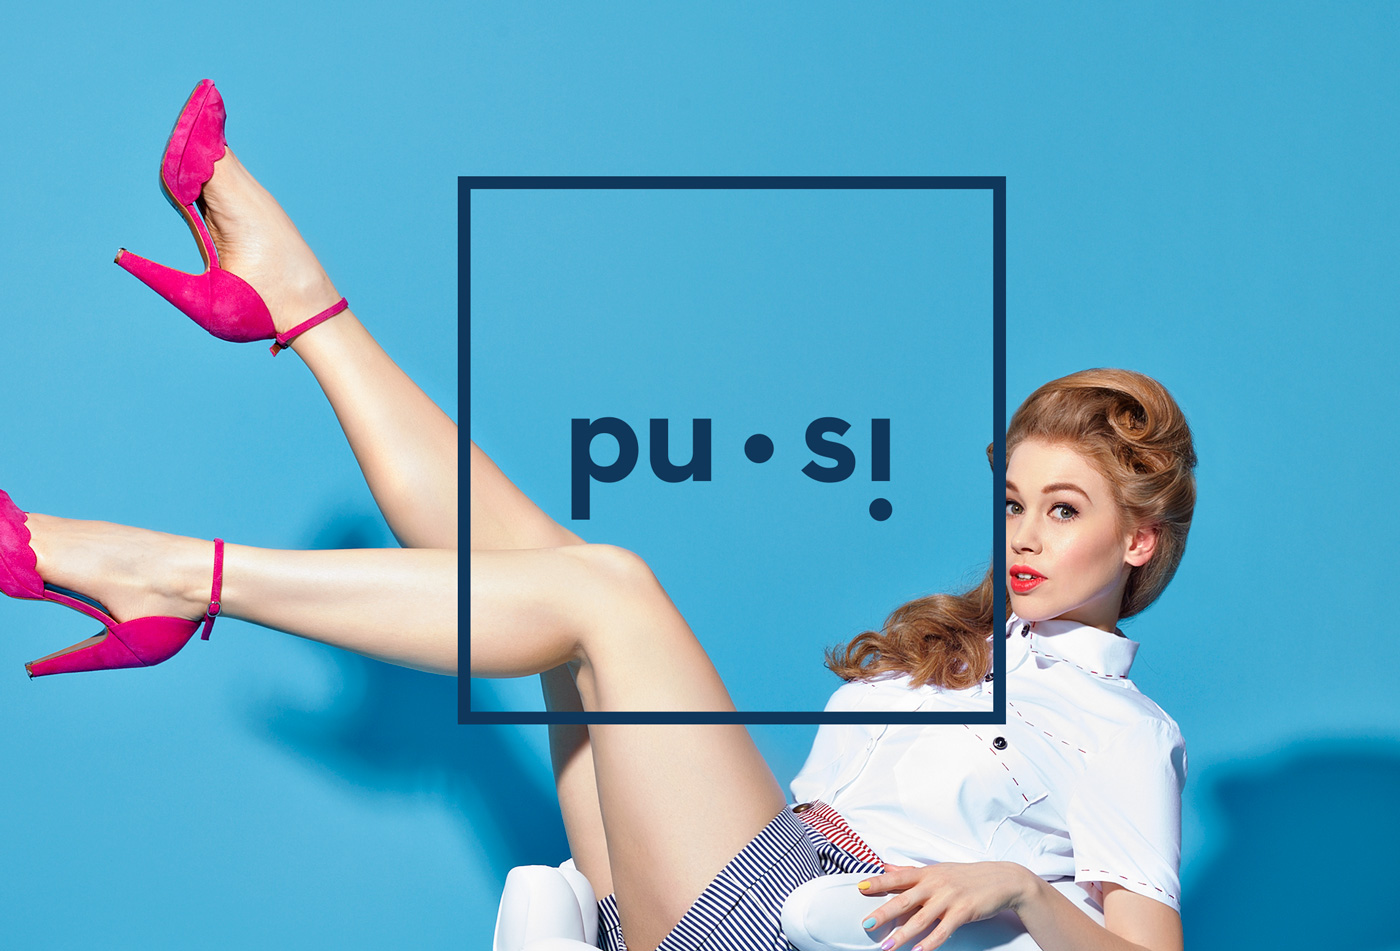 https://www.behance.net/gallery/27016101/PuSi-pin-up-company